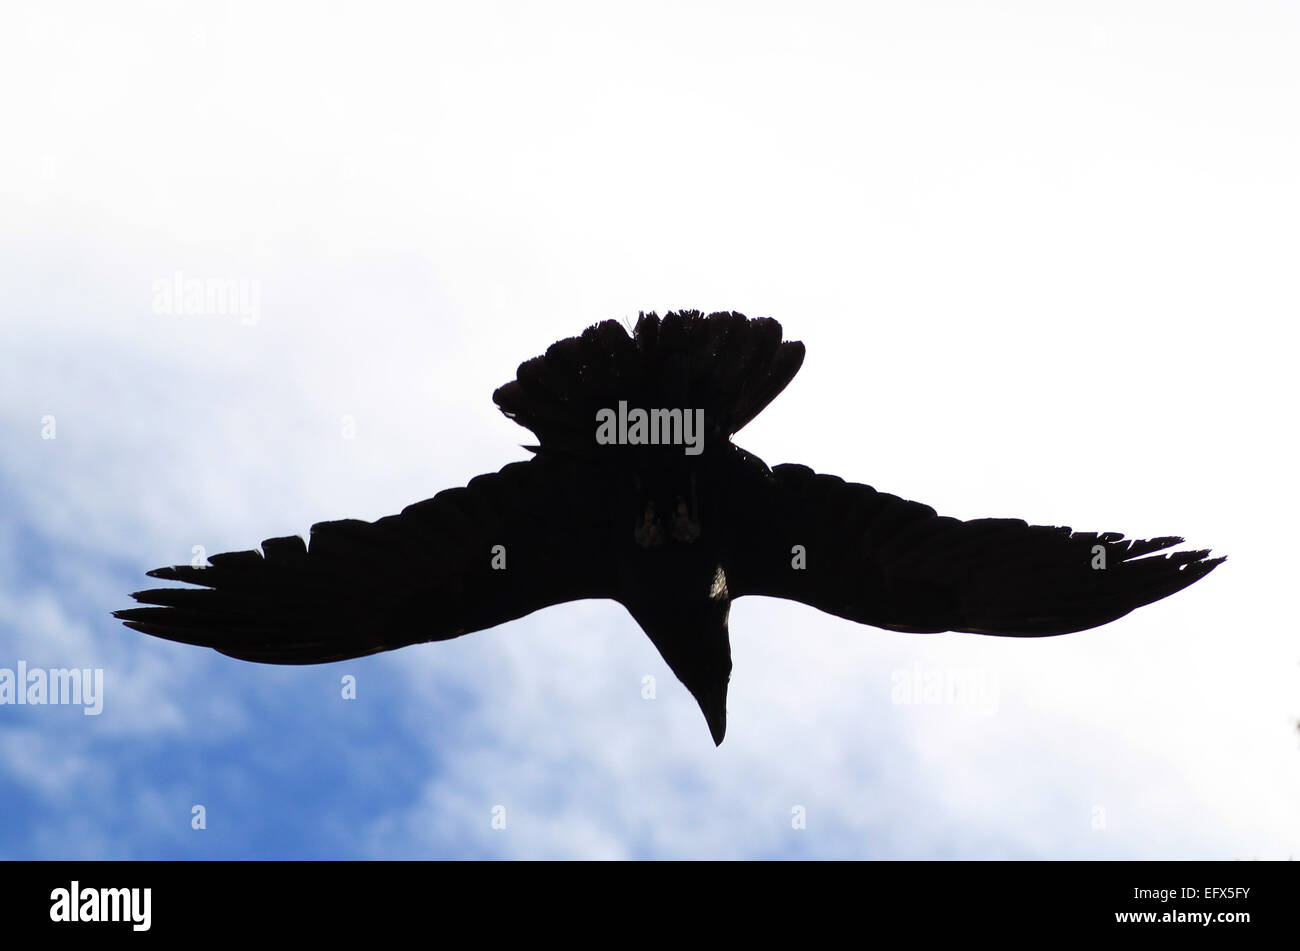 A silhouette of a black raven on blue sky with white clouds. - Stock Image